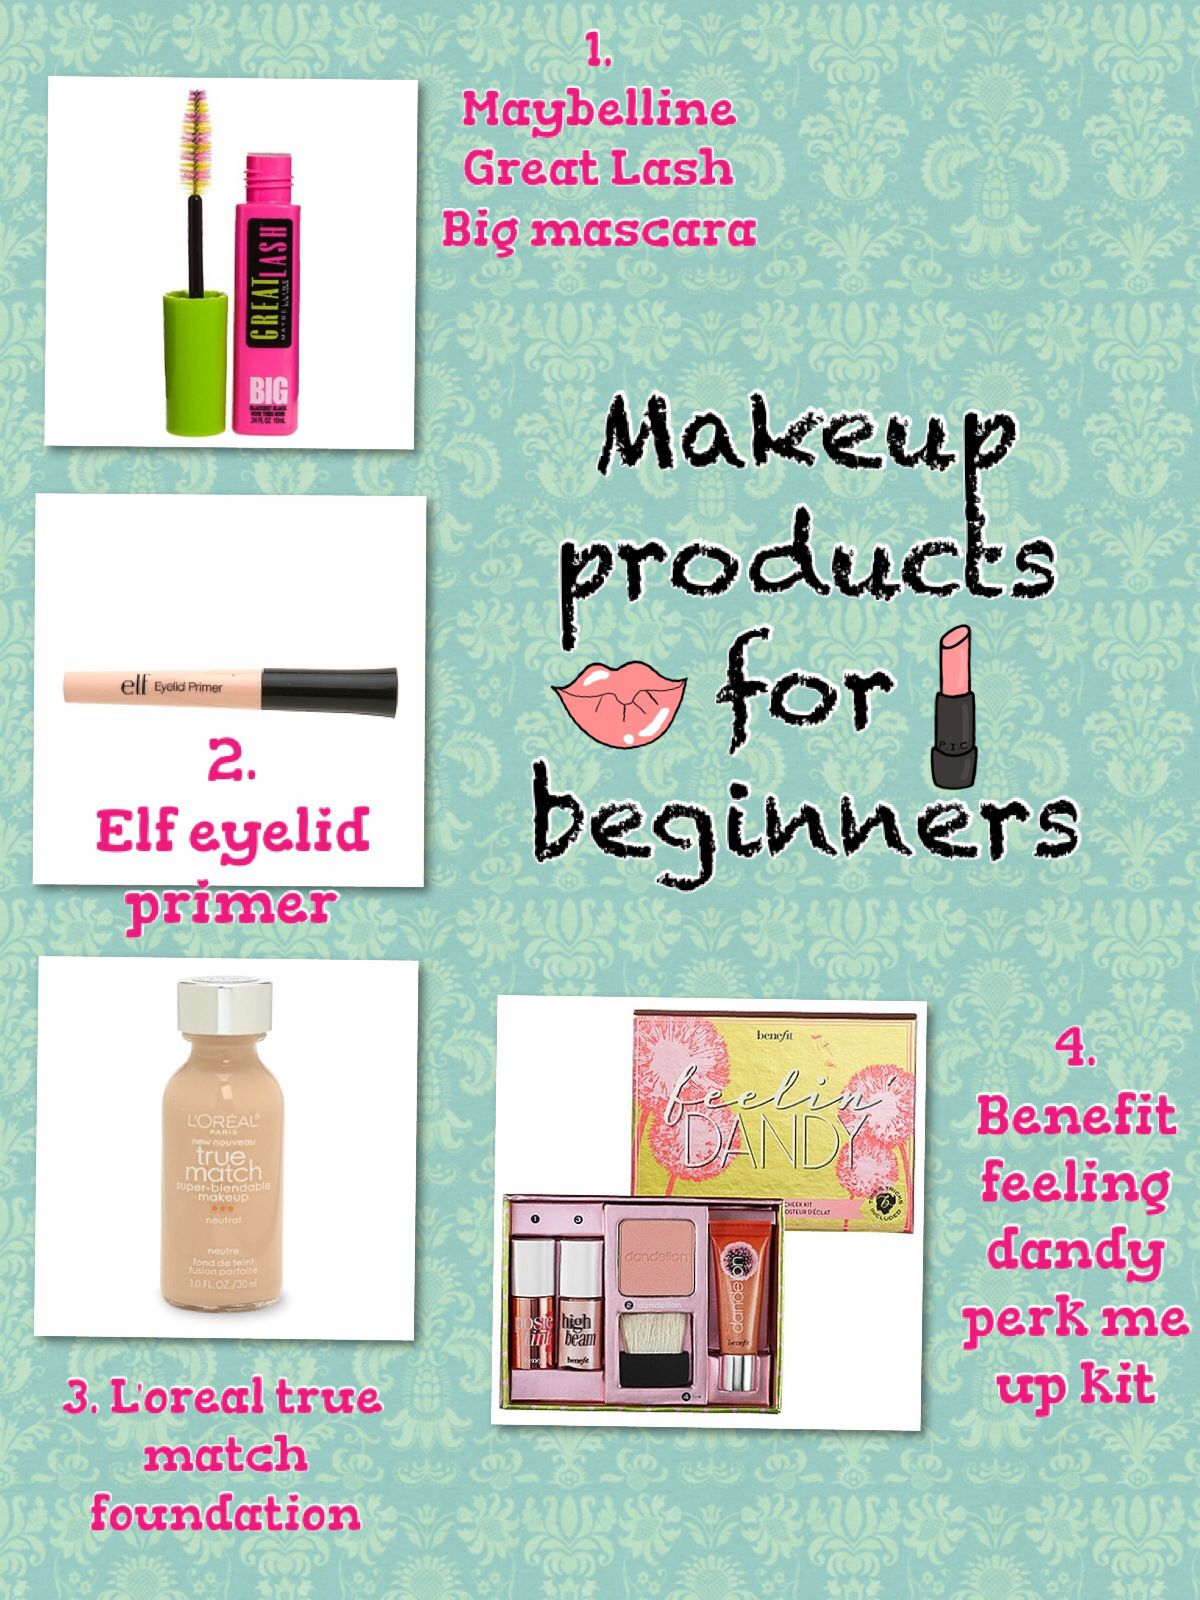 Great products for beginners at makeup mostly drugstore